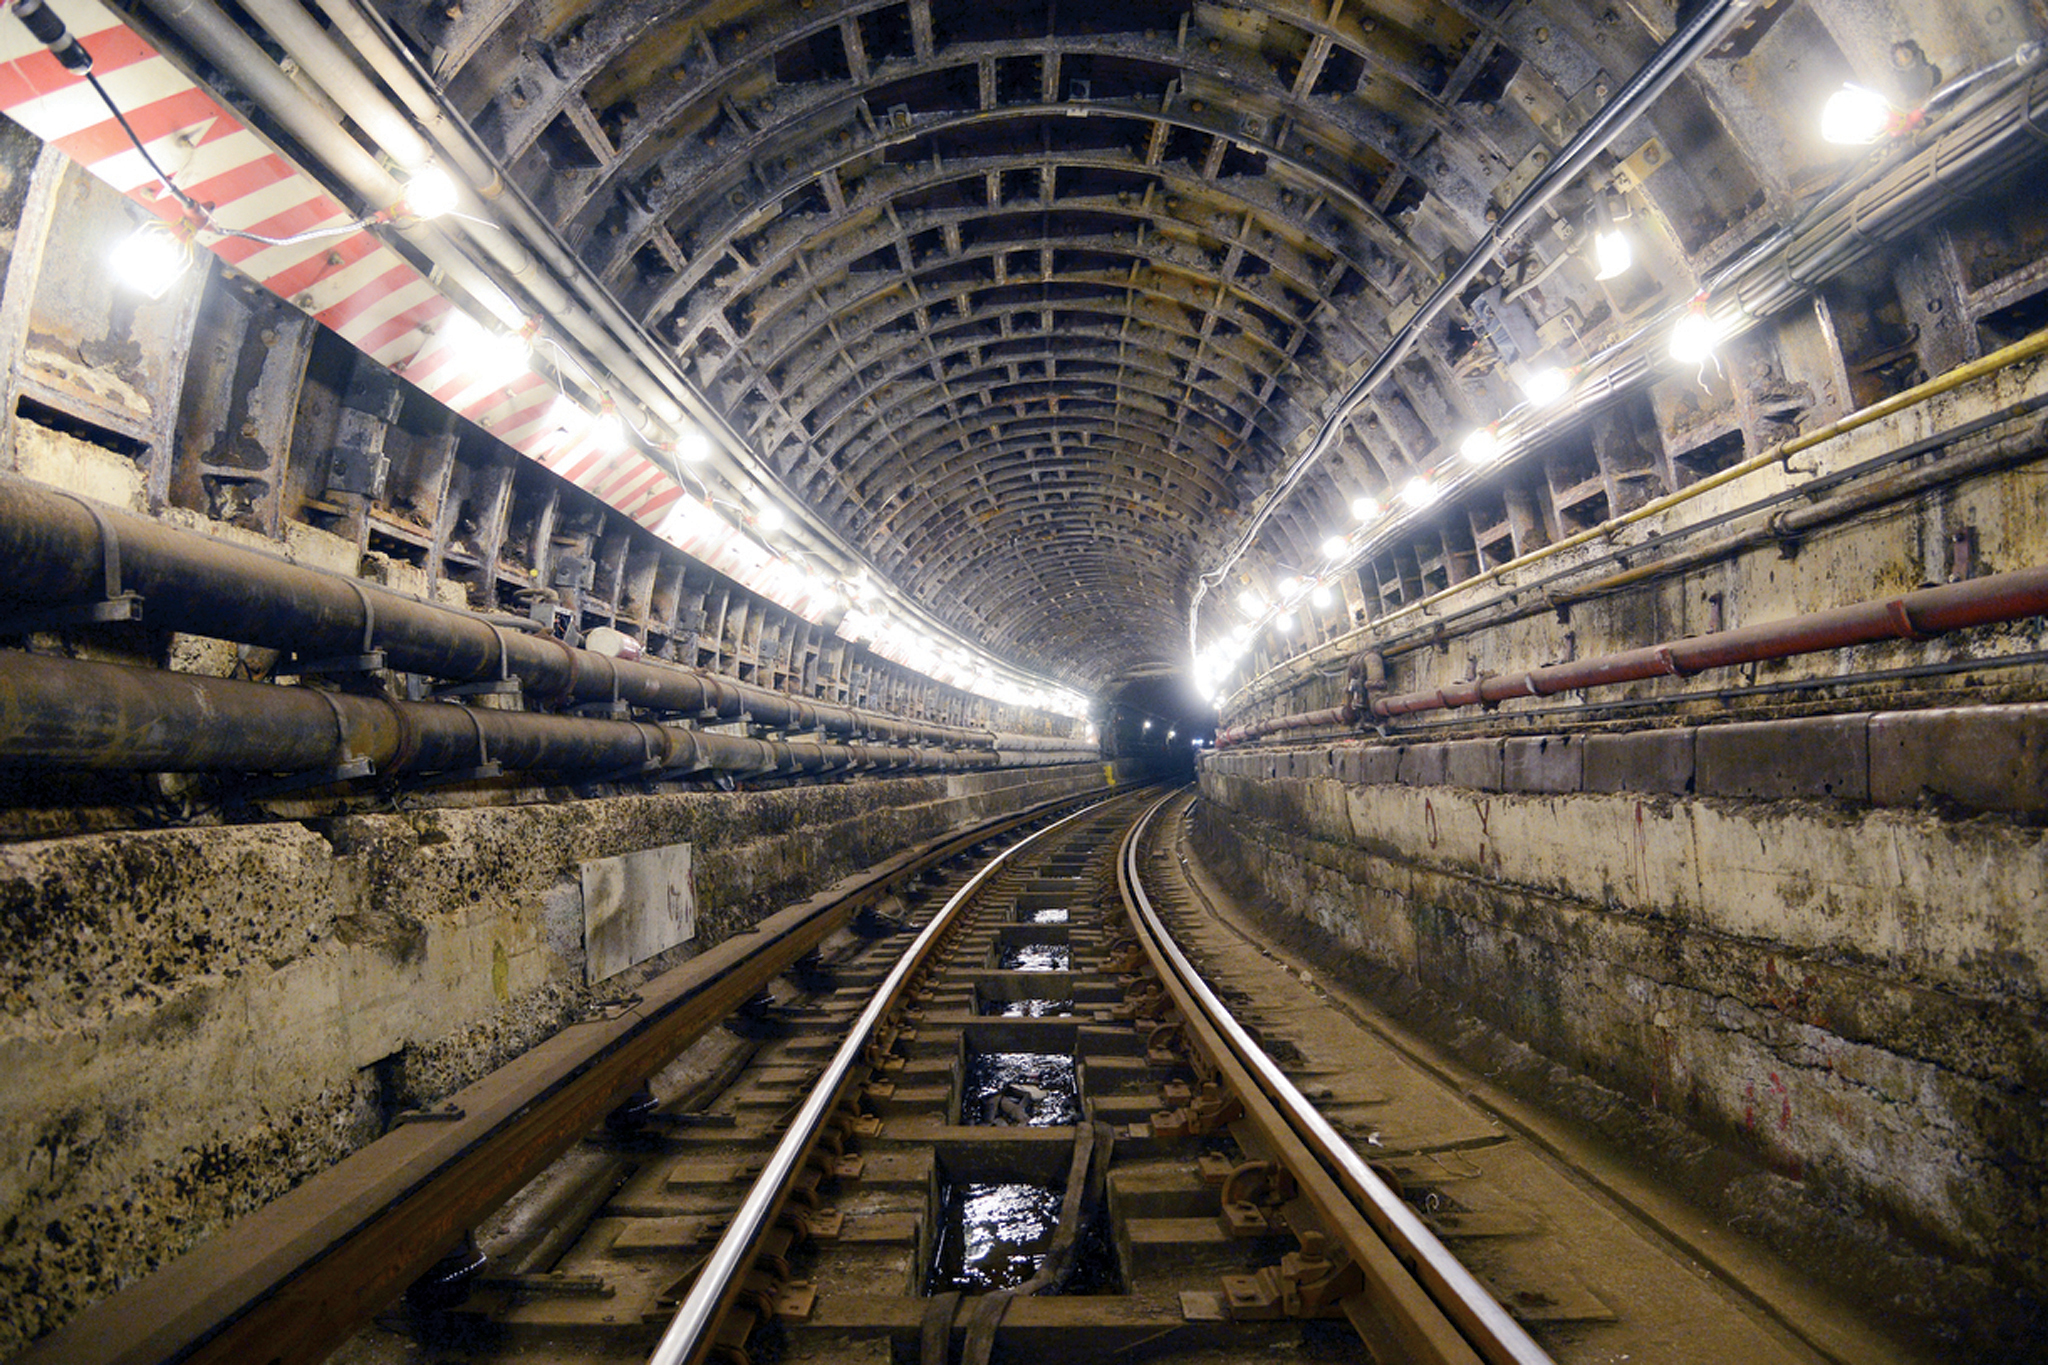 The project: Repairs to the Greenpoint and Montague tunnels